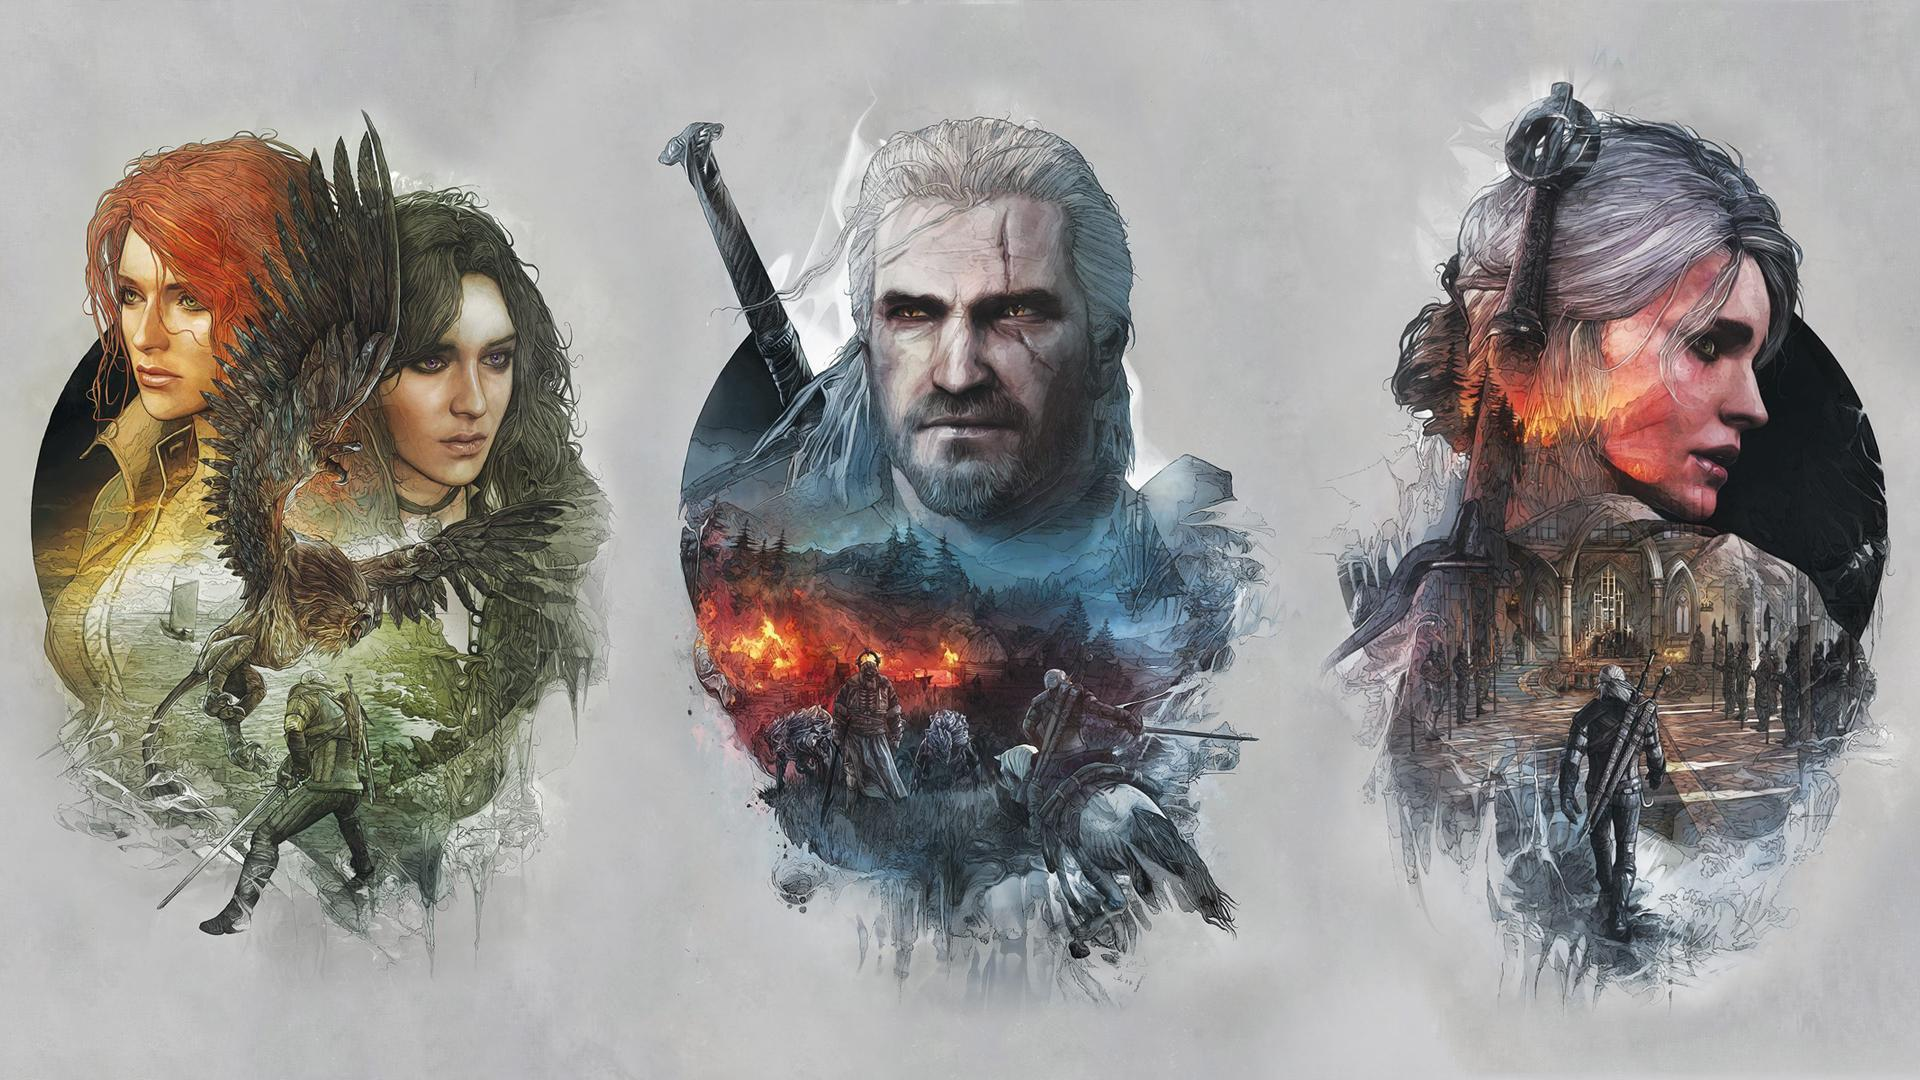 The Witcher 3 Wallpapers Image